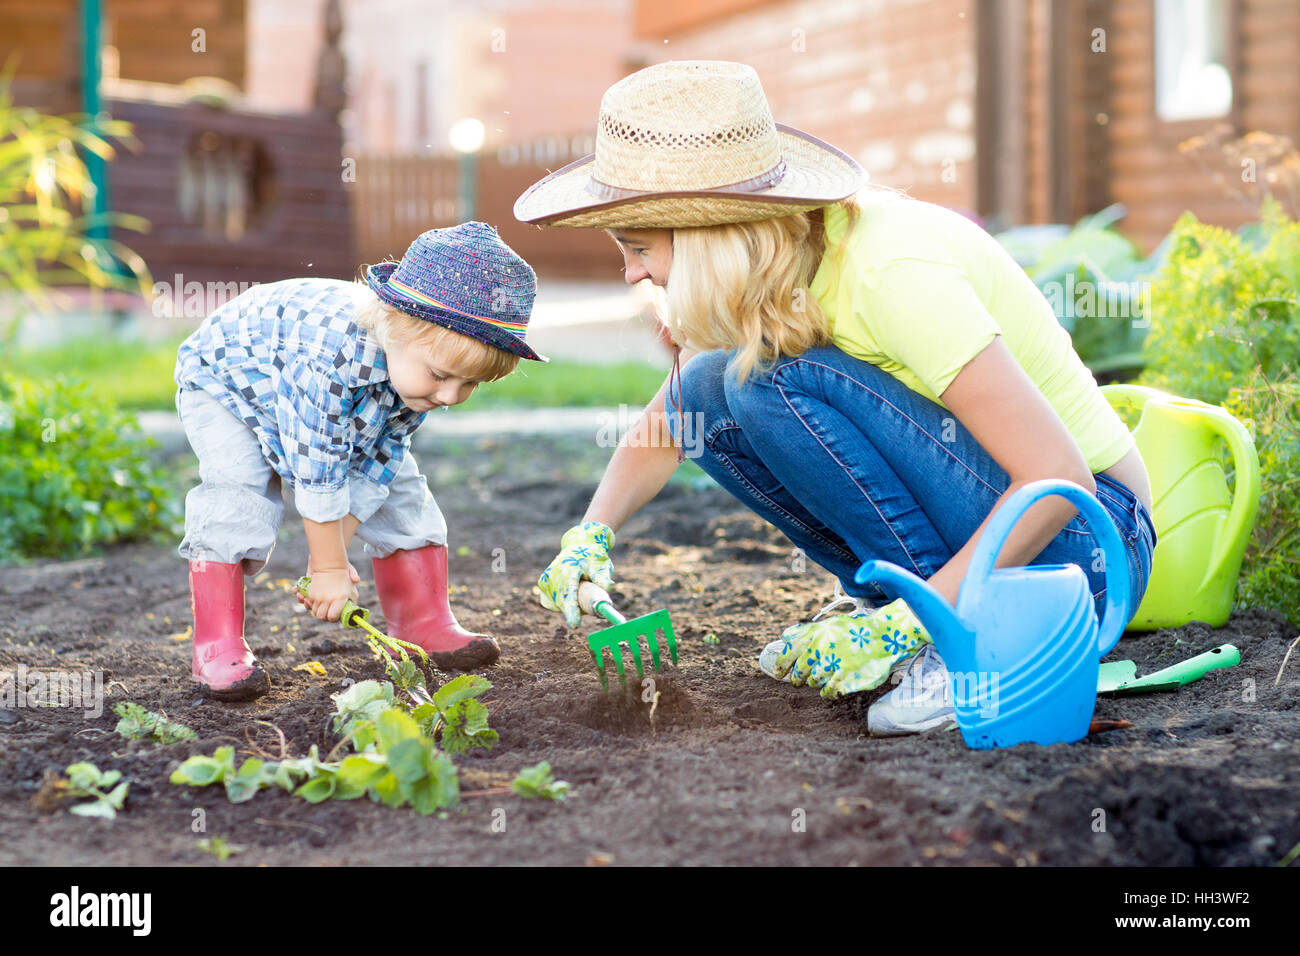 Kid and mother planting strawberry seedling into fertile soil outside in garden Stock Photo